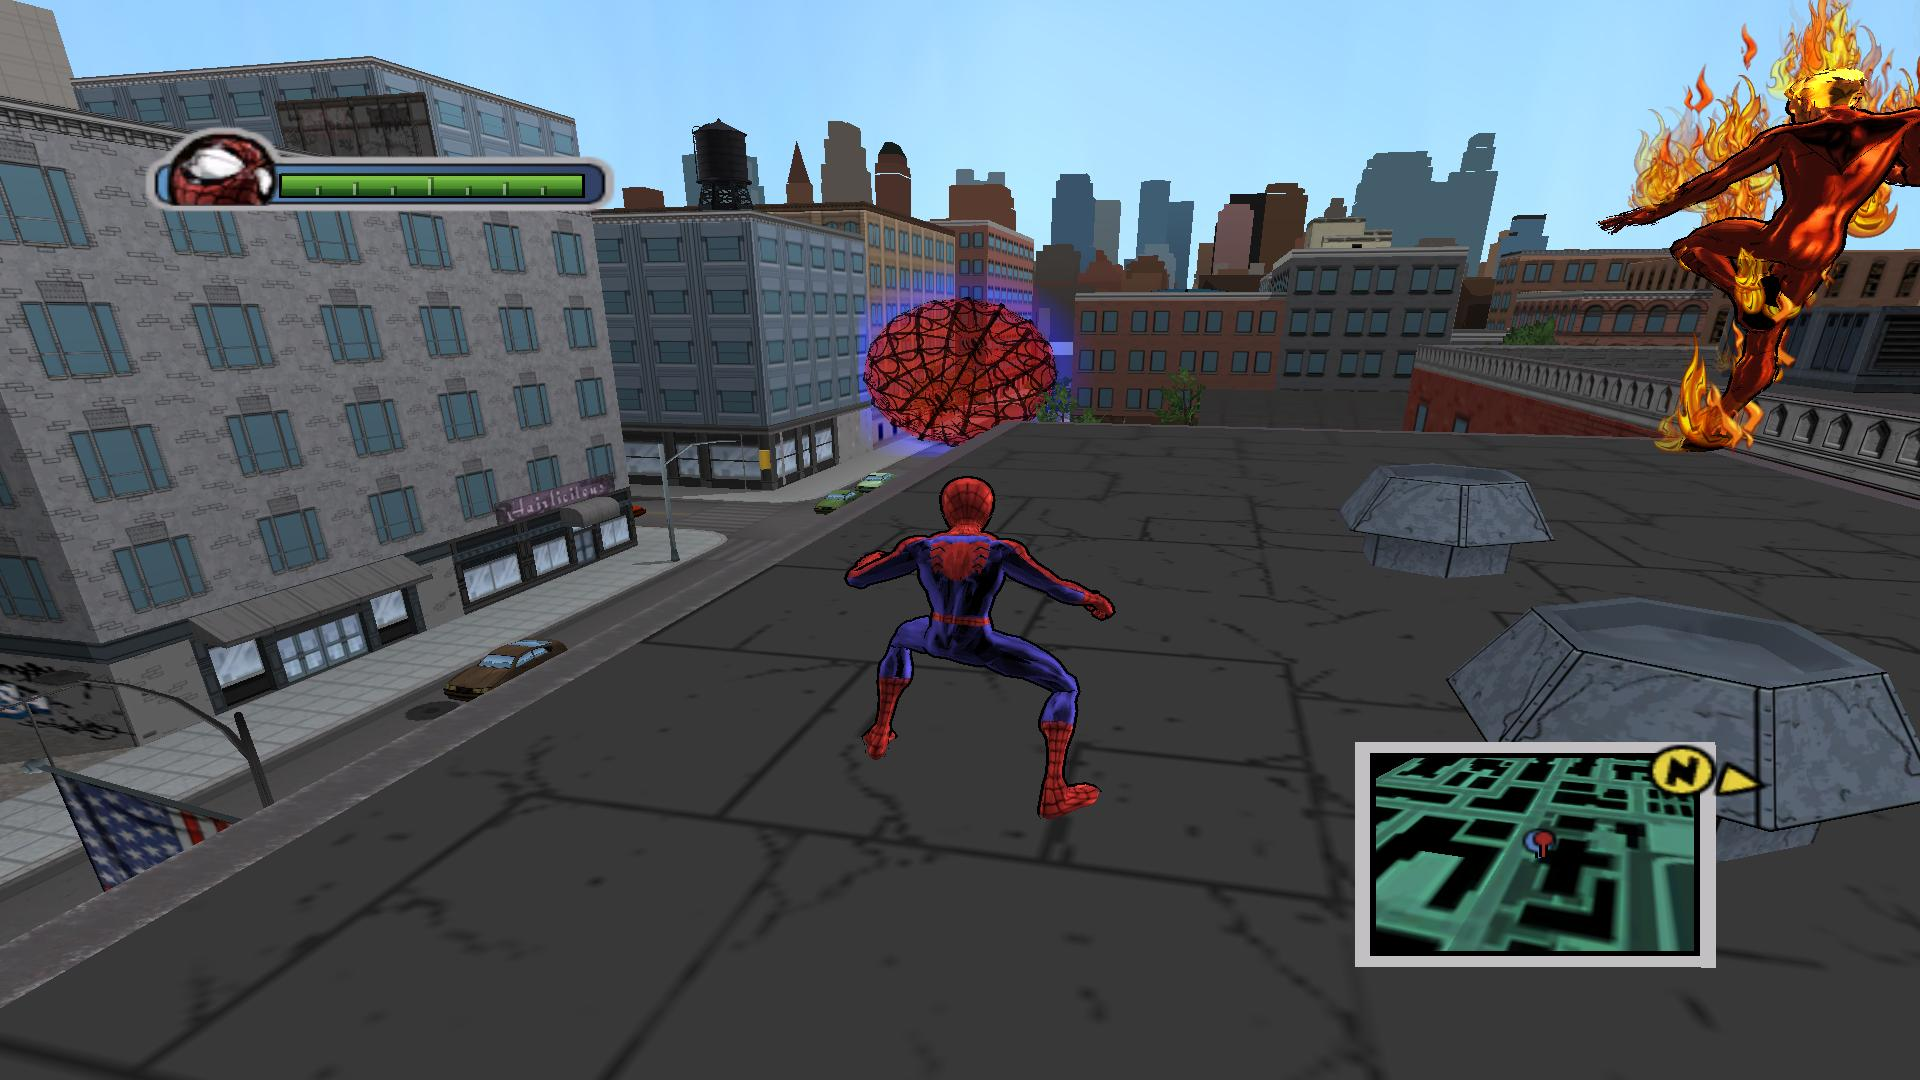 Spider-man 2 playstation portable(psp isos) rom download.